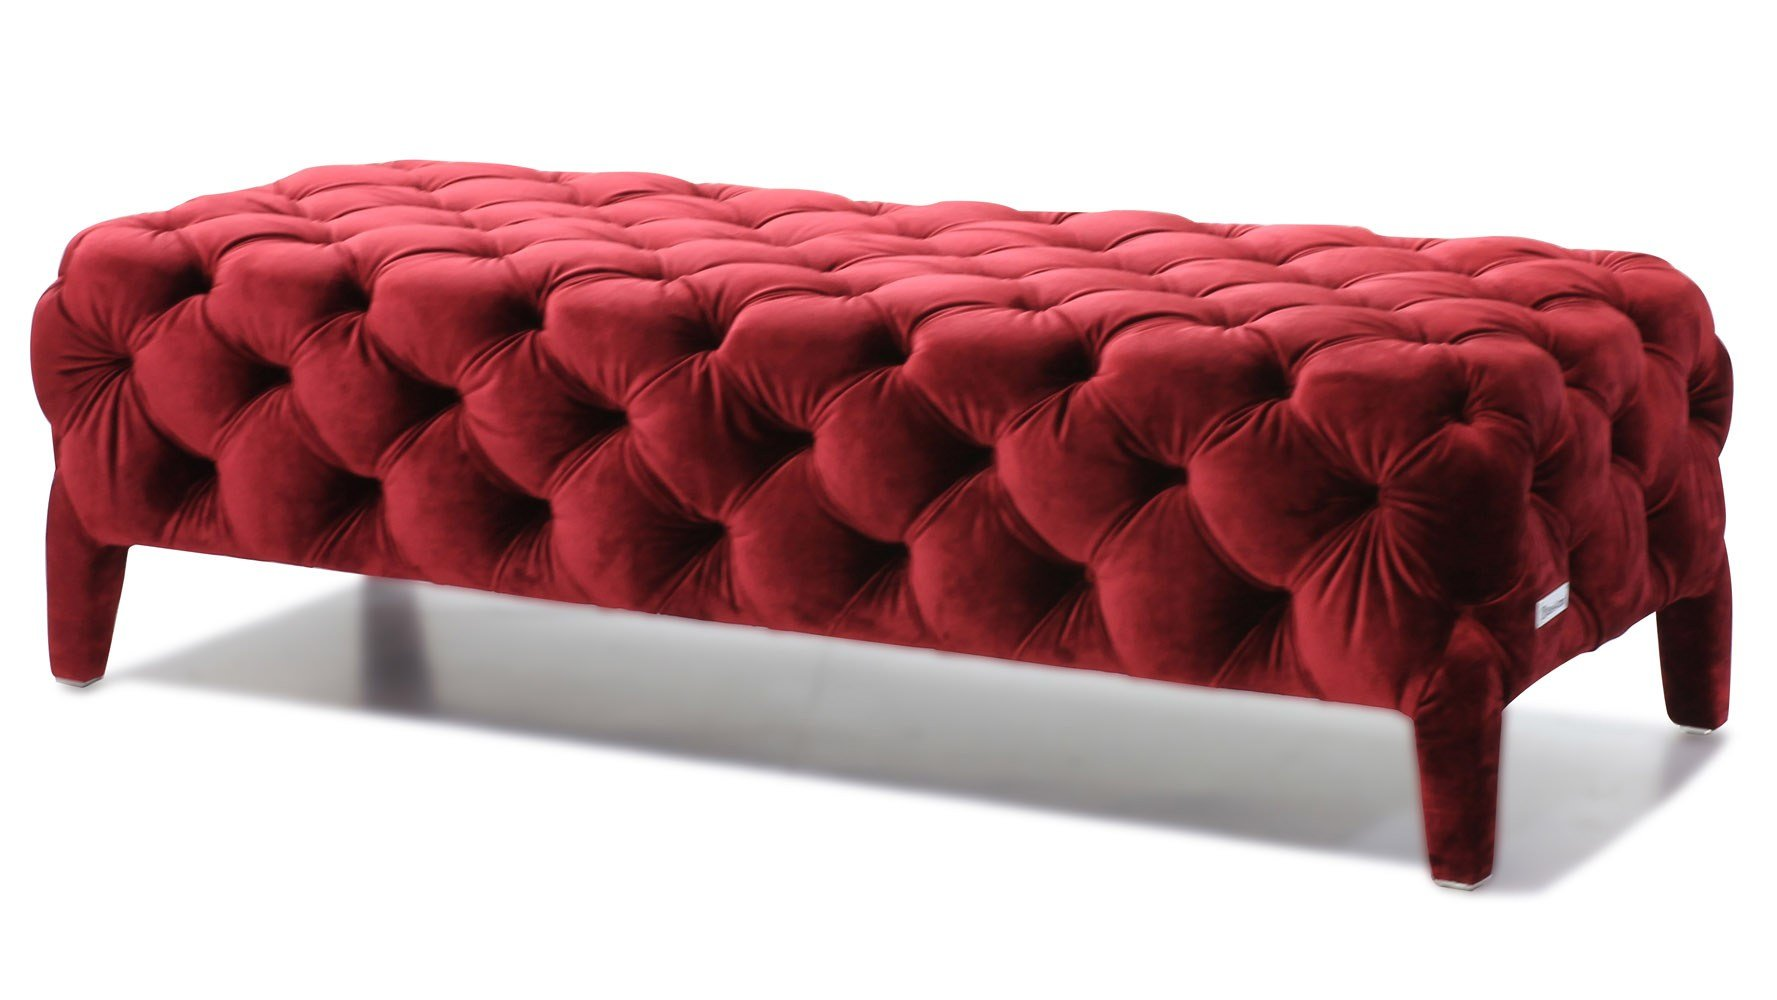 Best Modern Red Velour Tufted Oslo Bedroom Bench Zuri Furniture With Pictures